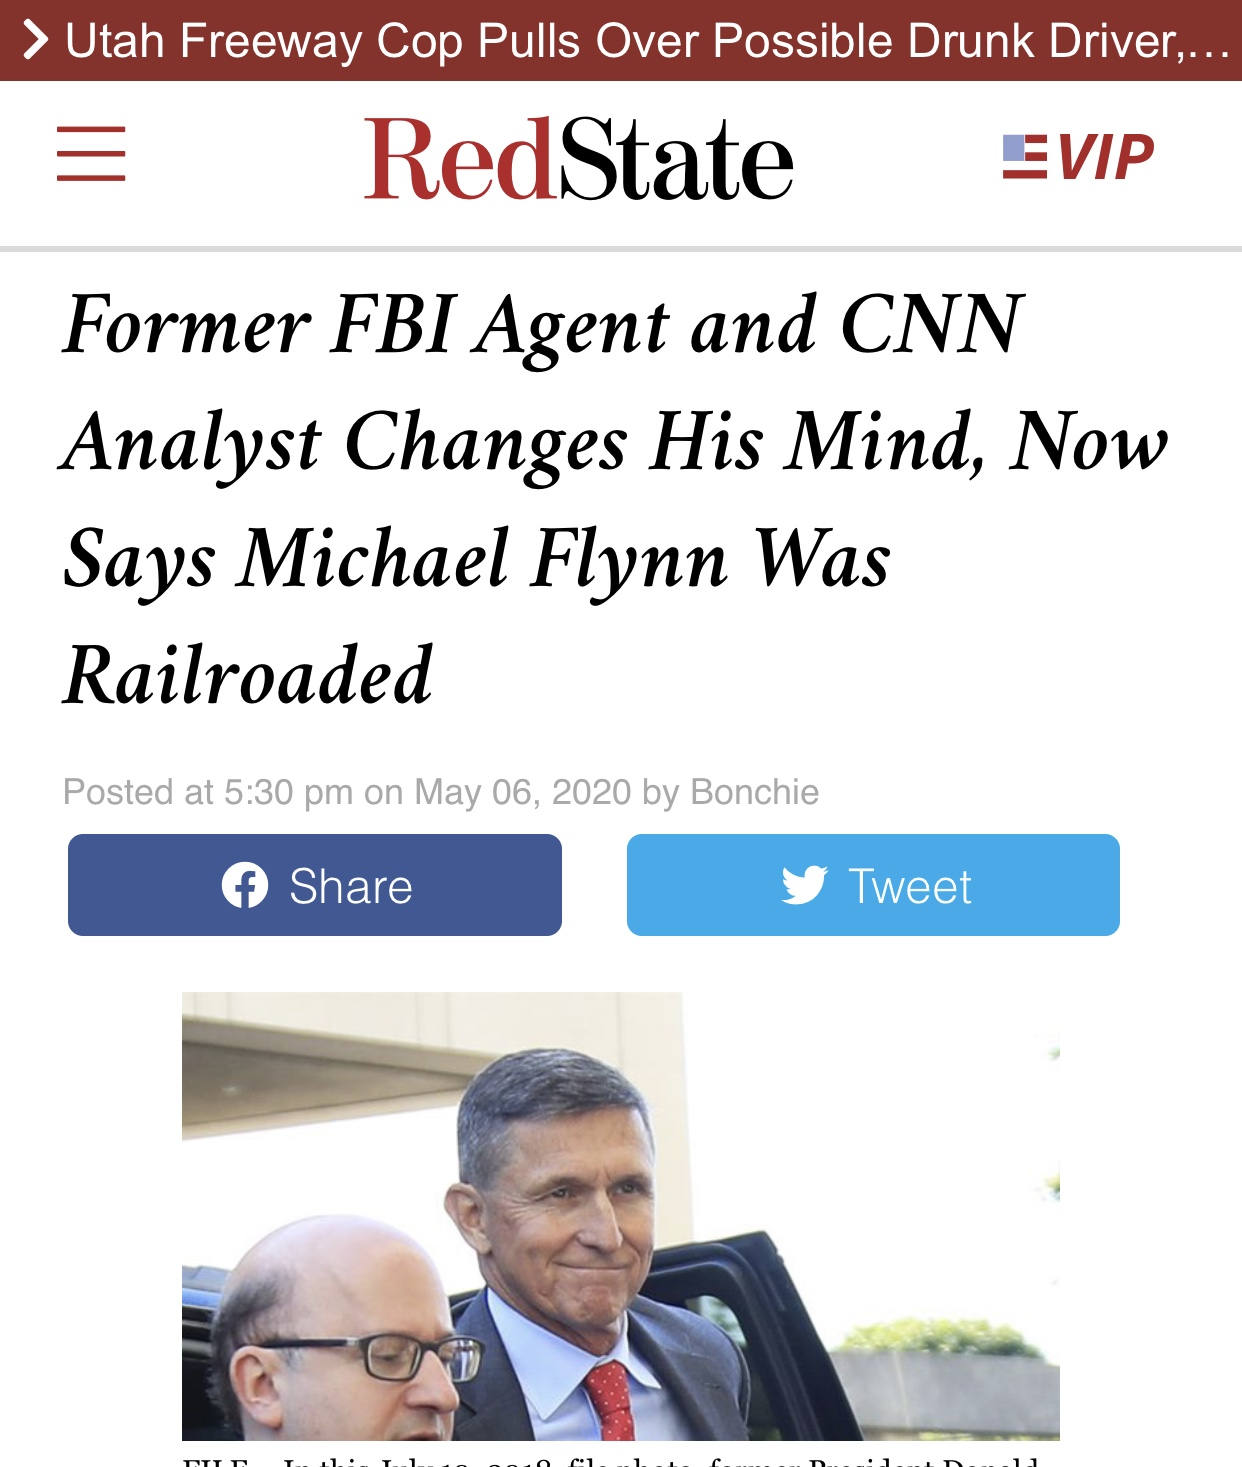 Former FBI Agent and CNN Analyst Said Michael Flynn Was Railroaded